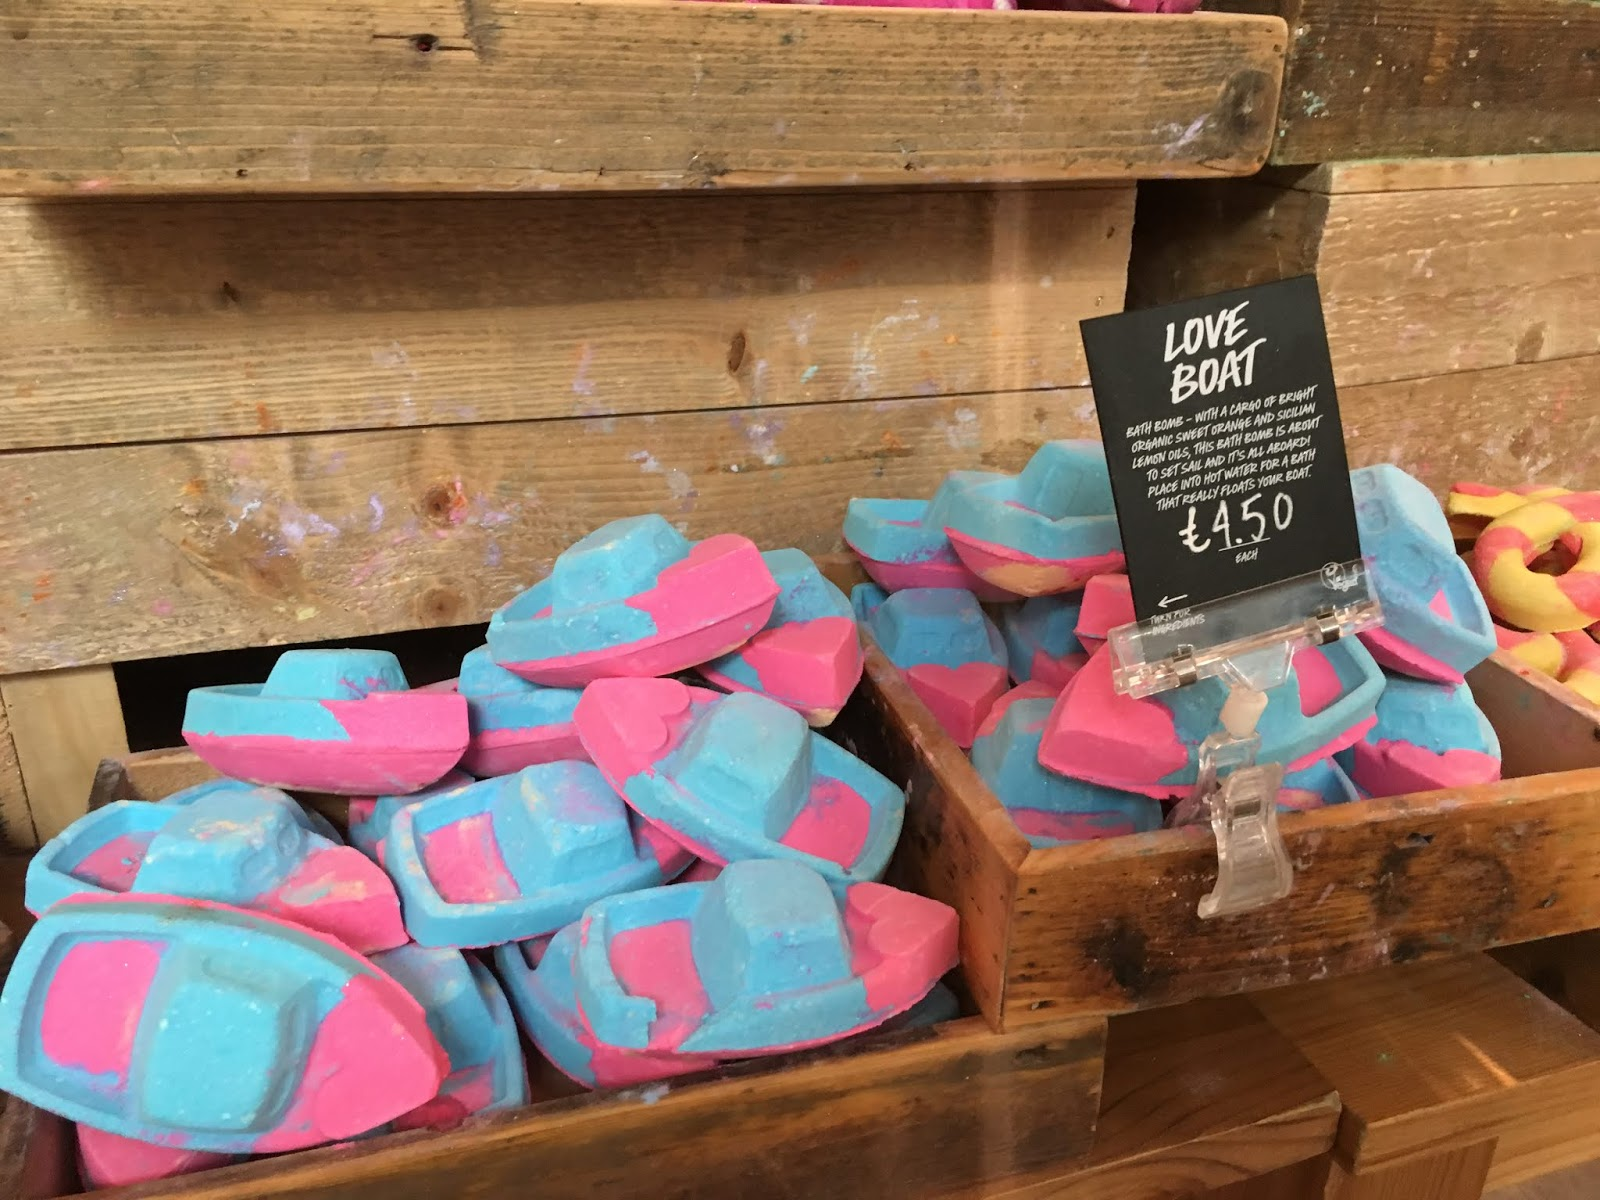 lush-love-boat-bath-bomb